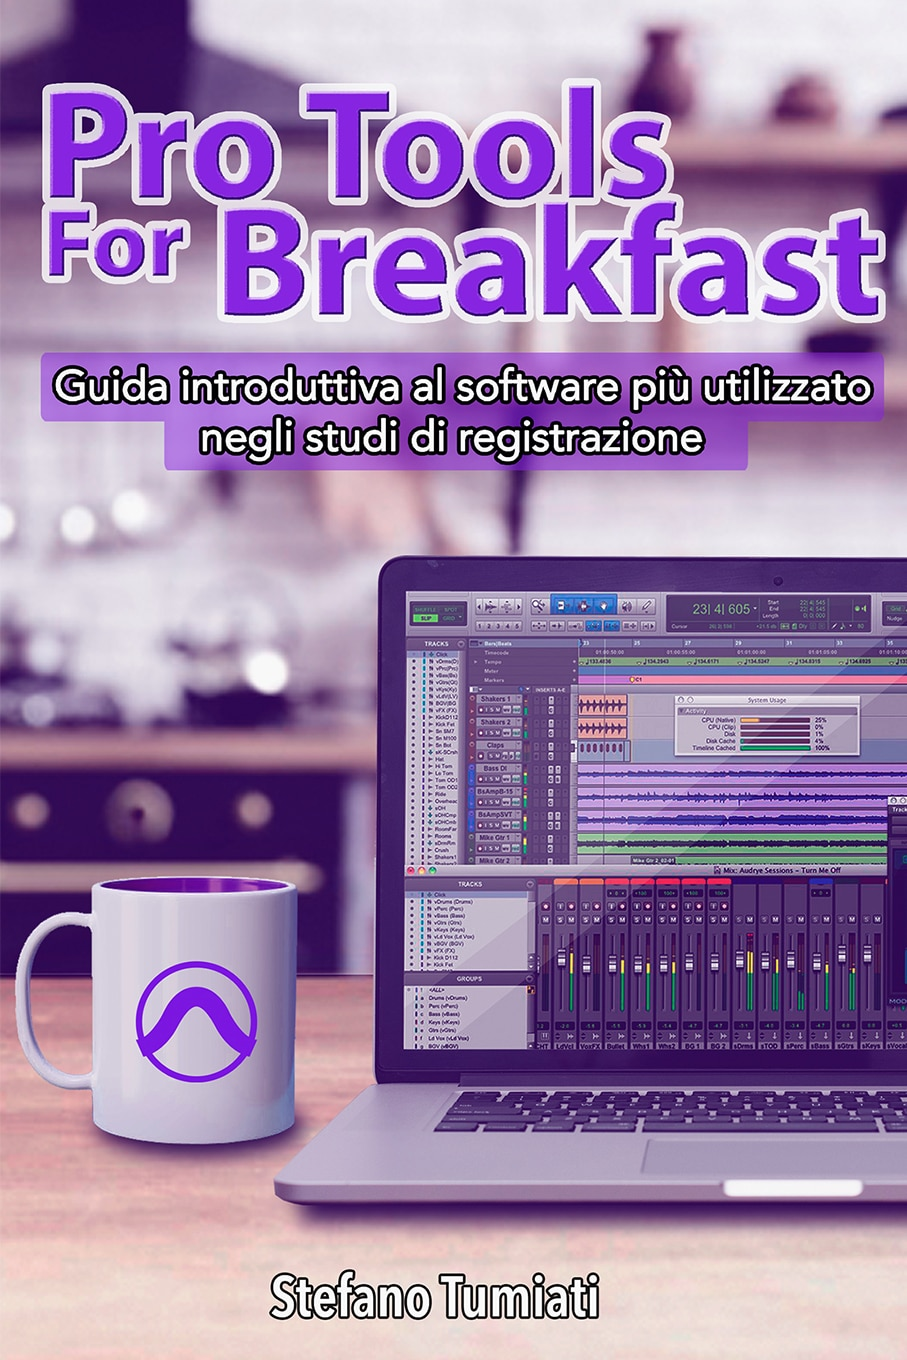 pro-tools-for-breakfast